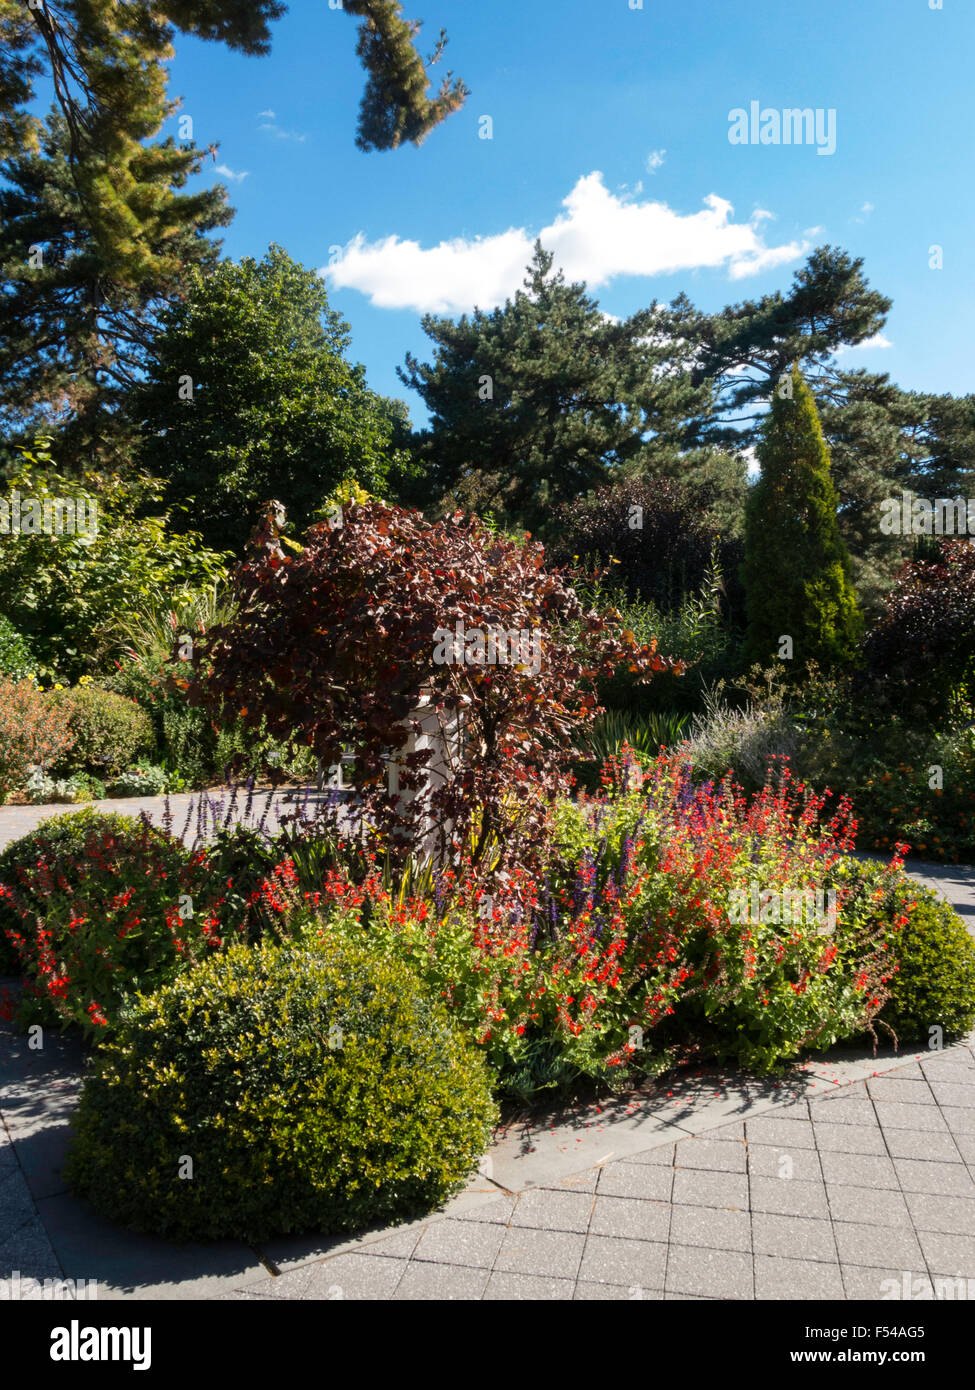 New York Botanical Garden, The Bronx, NY, USA Stock Photo: 89221221 ...